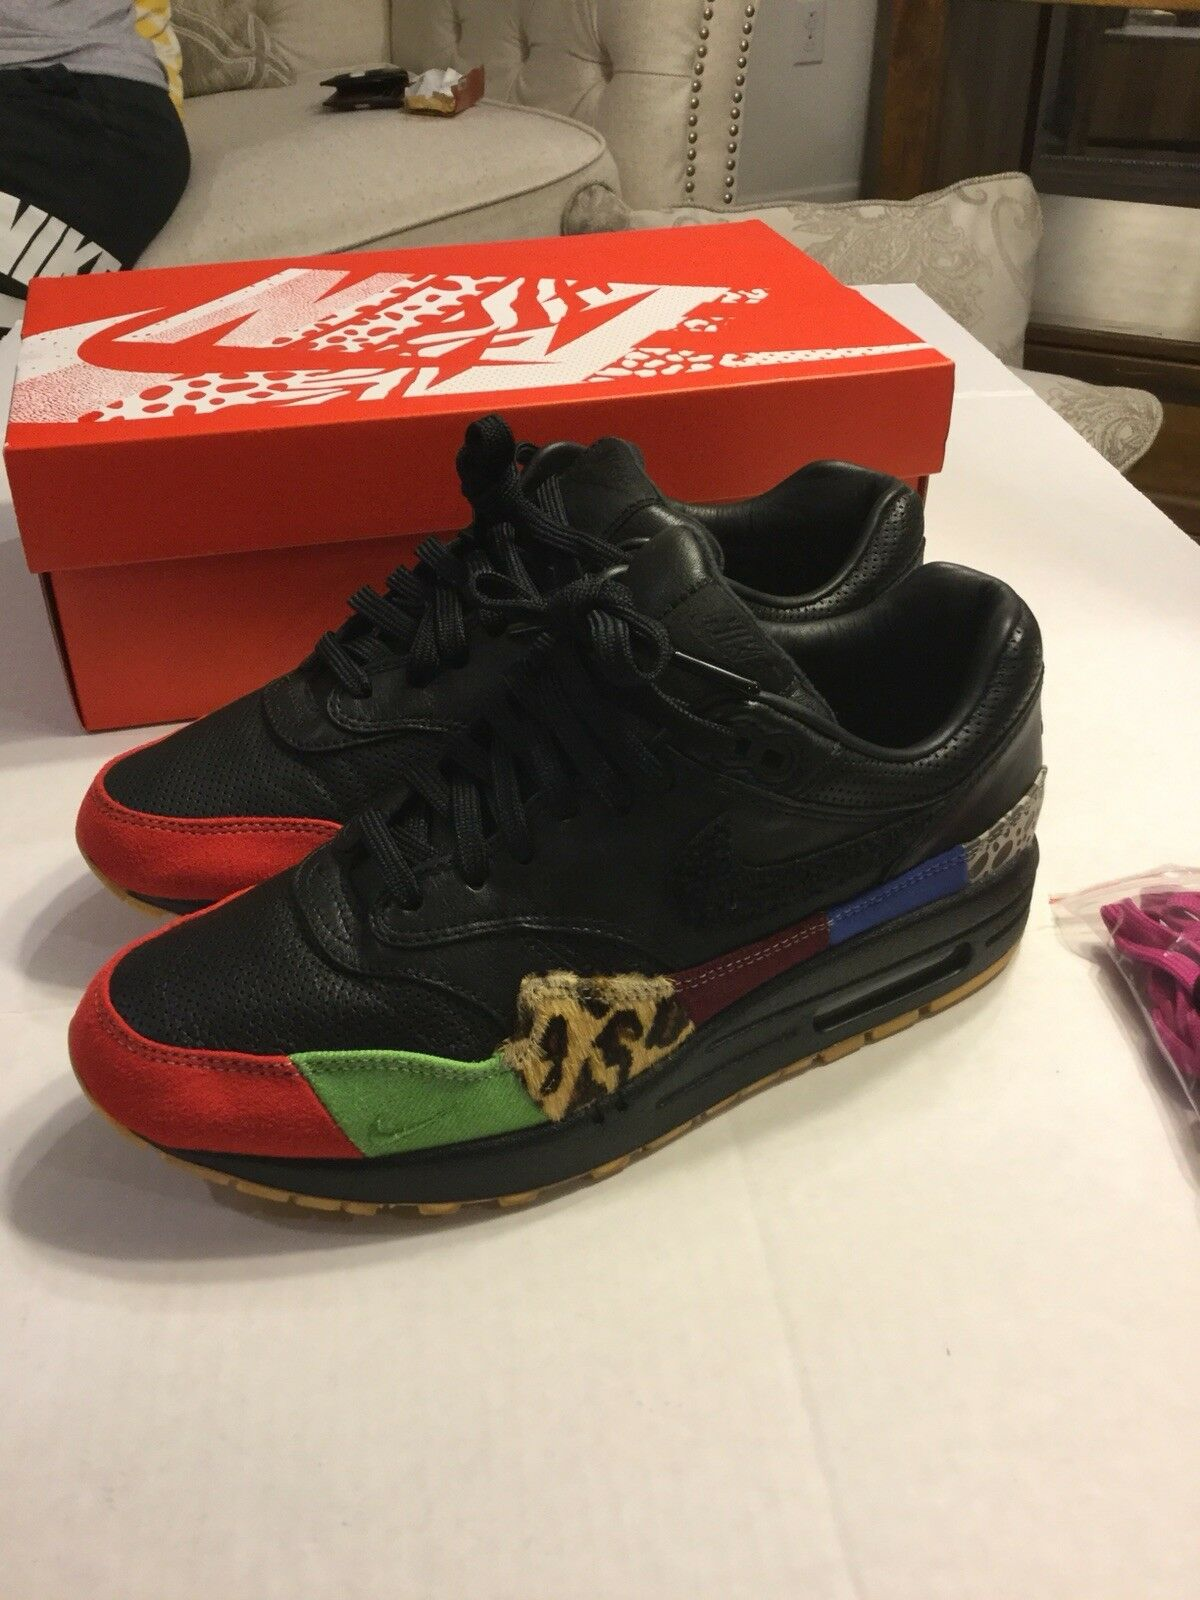 Nike Air Max 1 Master US Men's size 8 The latest discount shoes for men and women